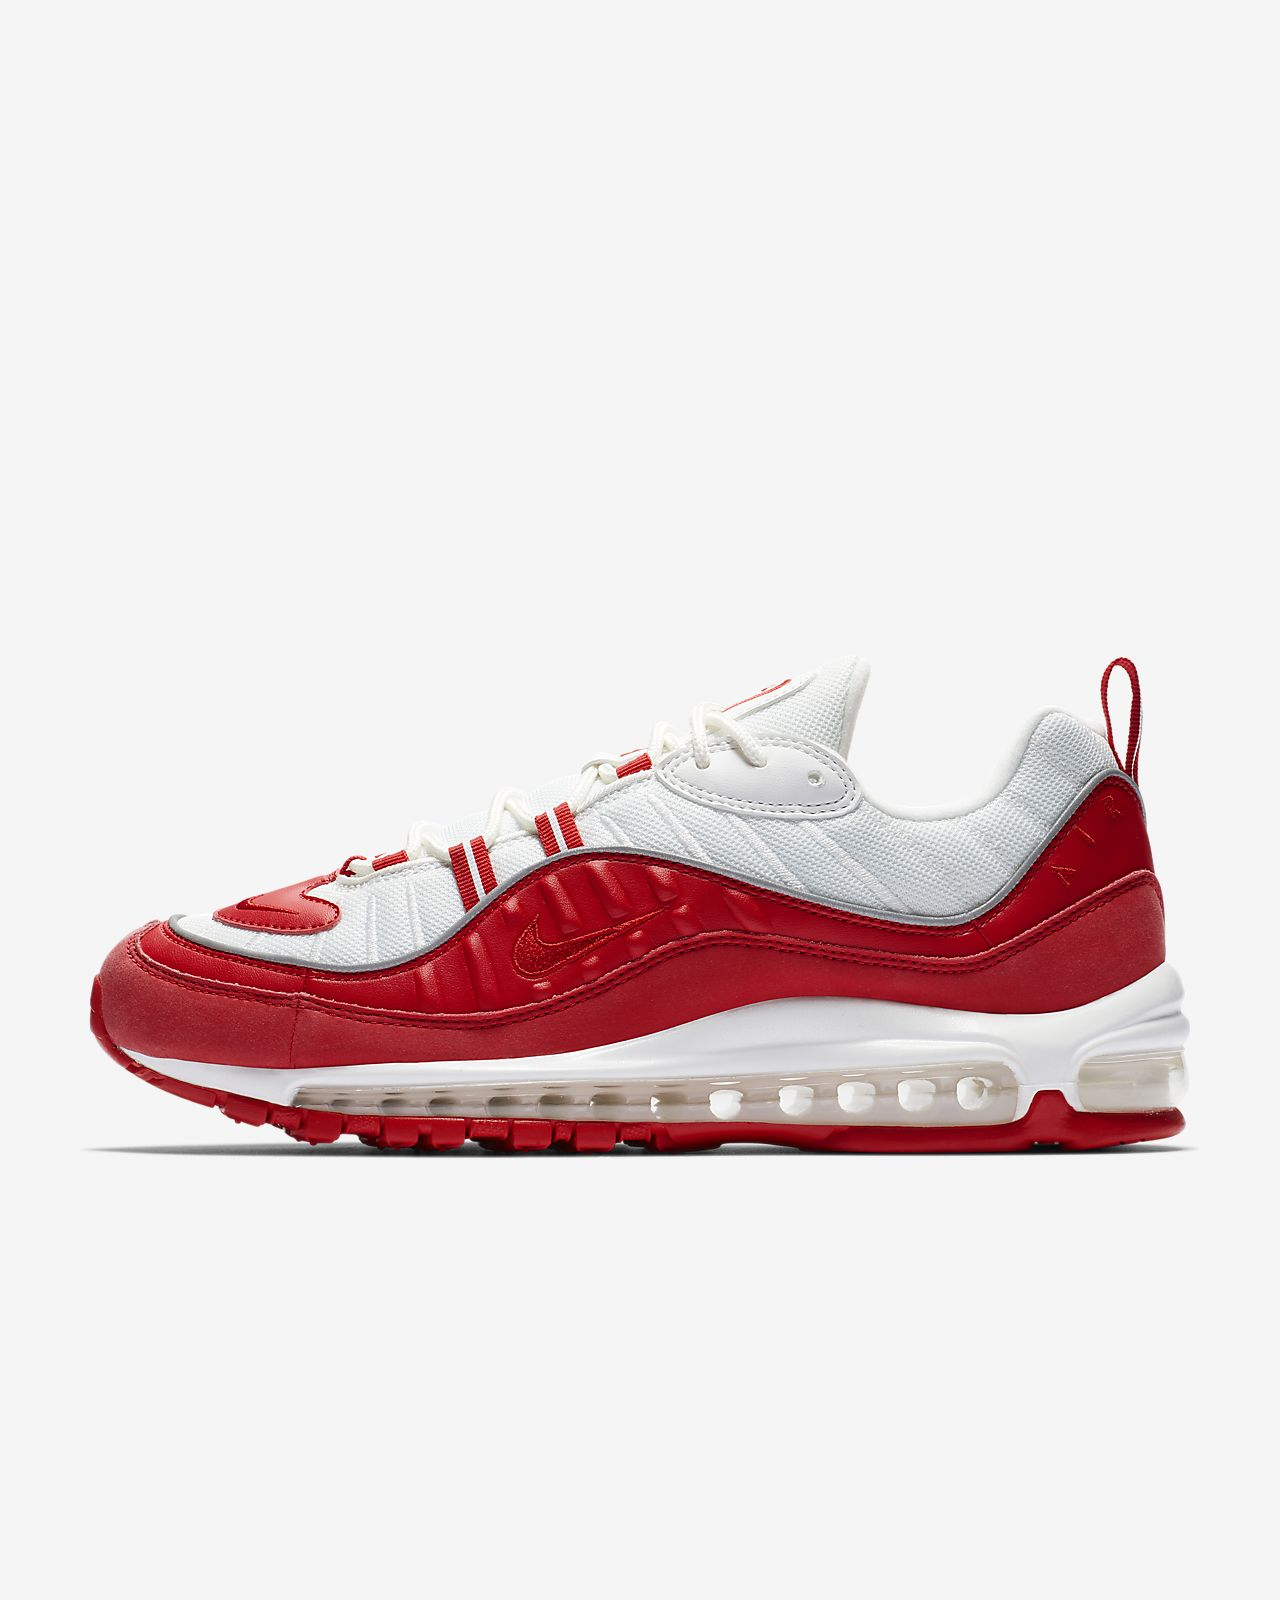 premium selection 292e8 be0b6 ... Nike Air Max 98 Men s Shoe